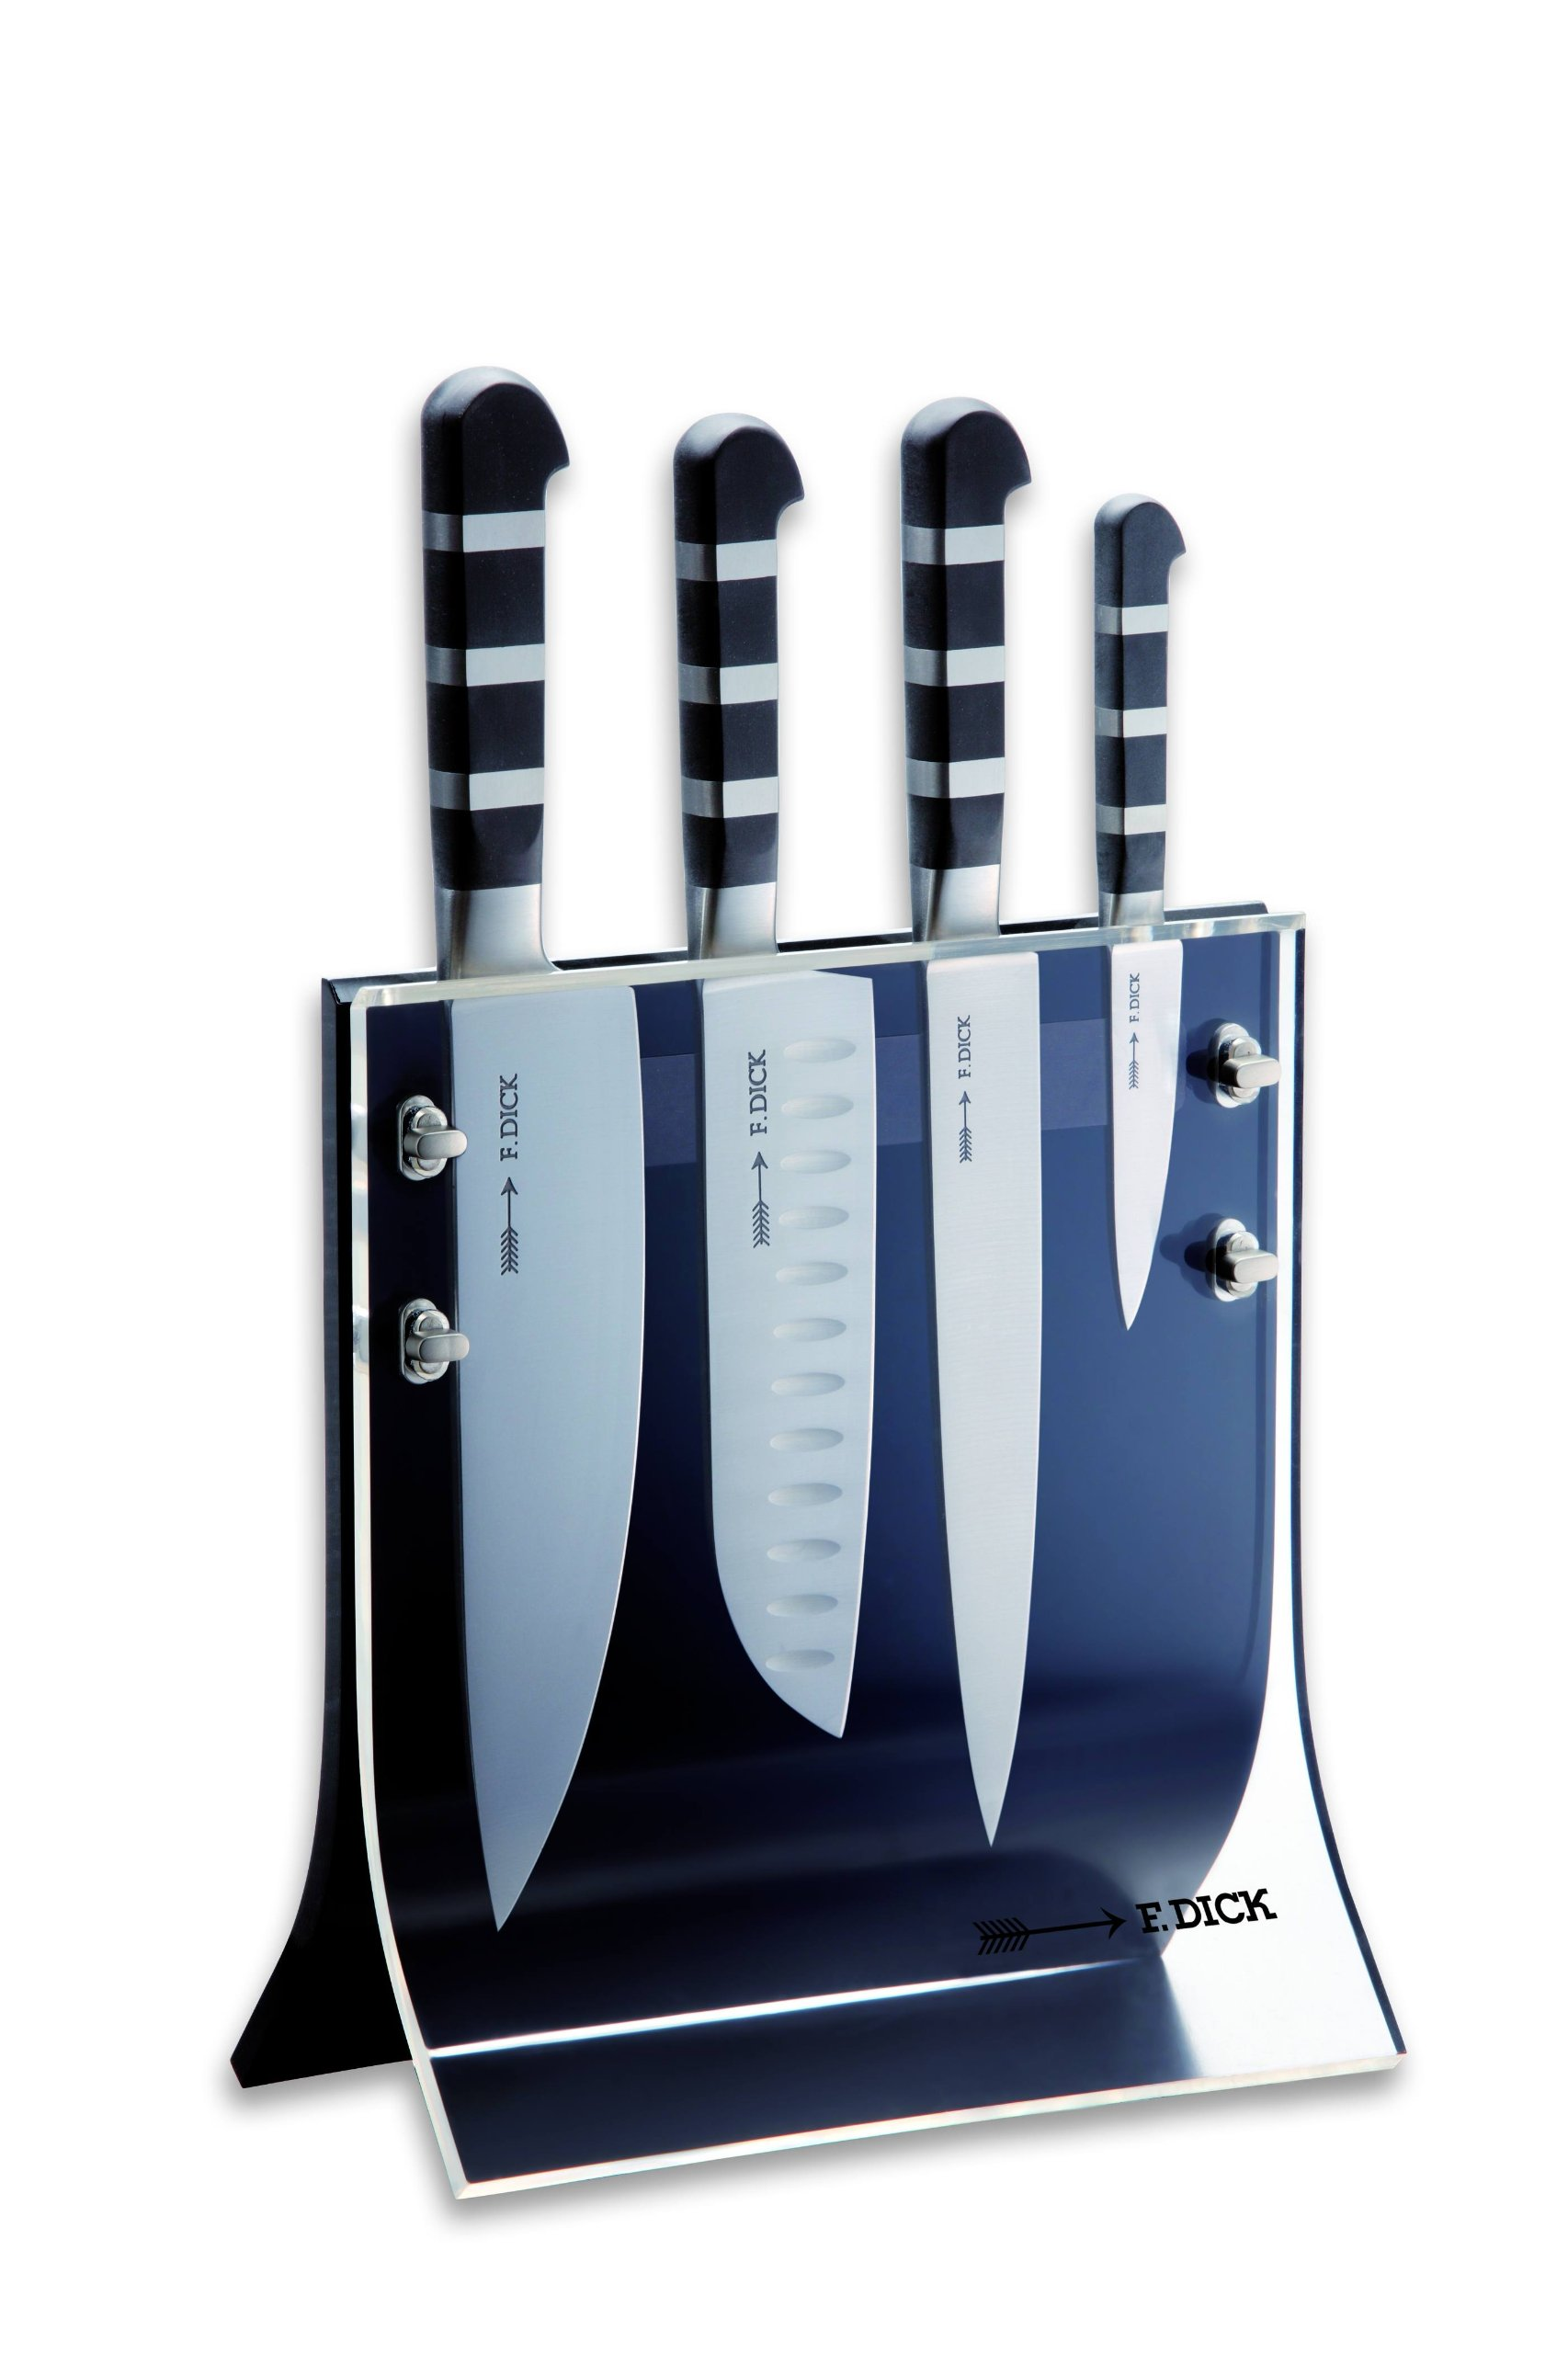 Friedr. Dick 4-Piece 1905 Knife Block Includes 8'' Chef's Knife, 7'' Santoku Knife, 8'' Slicer and 3'' Paring Knife by Friedr Dick